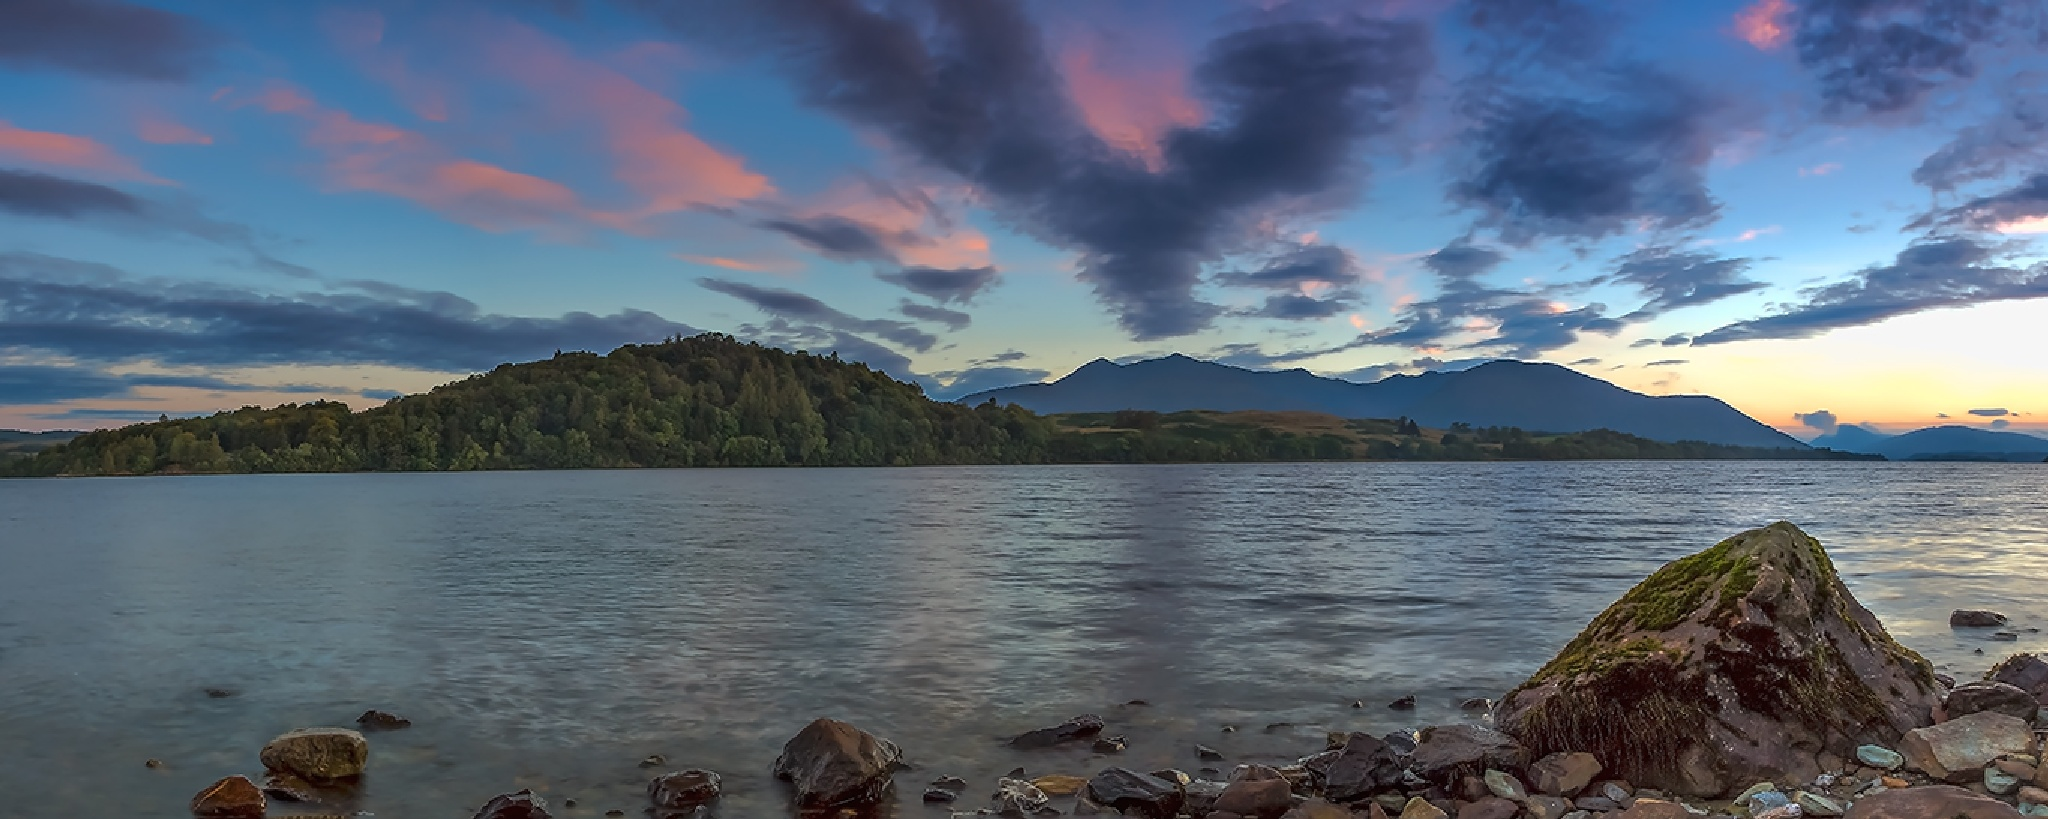 Loch Awe Panoramic by AndyGough